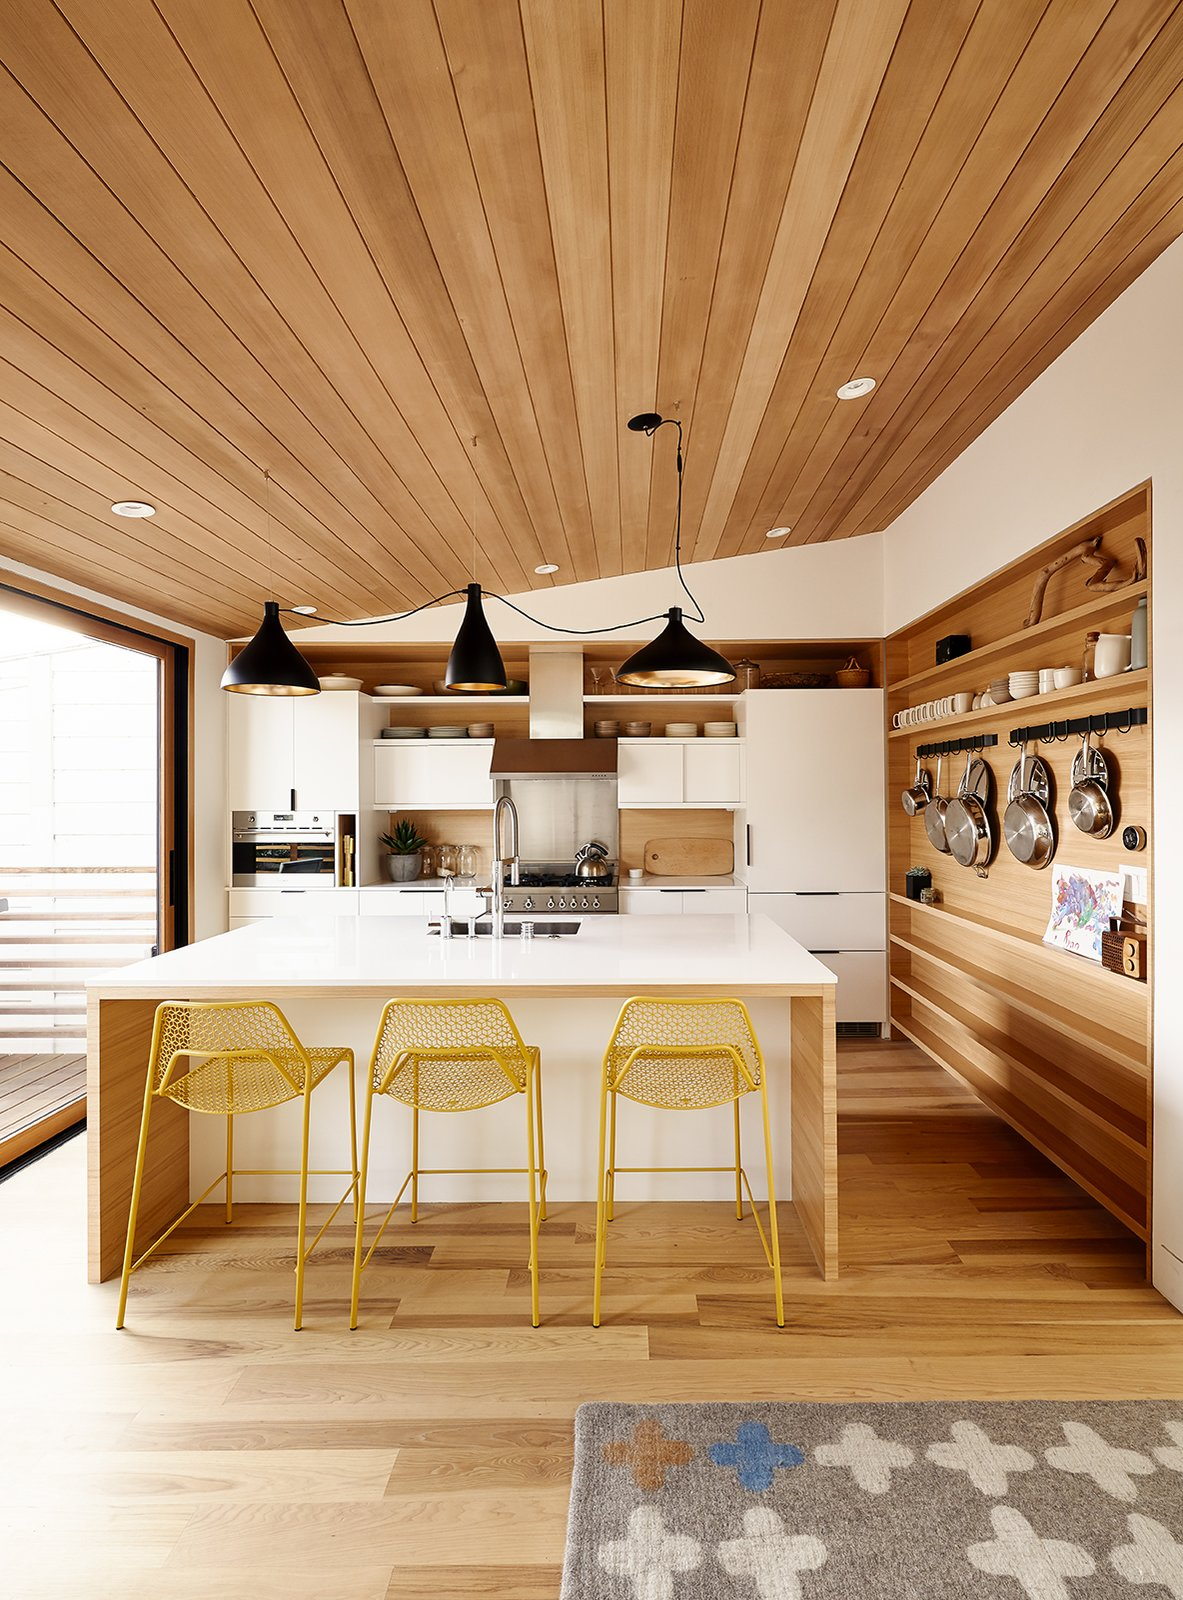 Light Hardwood Floor, Table, Chair, Wood Cabinet, and Kitchen Swell lights by Pablo hang above Hot Mesh stools from Blu Dot. The millwork is by J. Spix Fine Cabinets.  Best Photos from A Renovated Tiny Victorian with 21st-Century Interiors